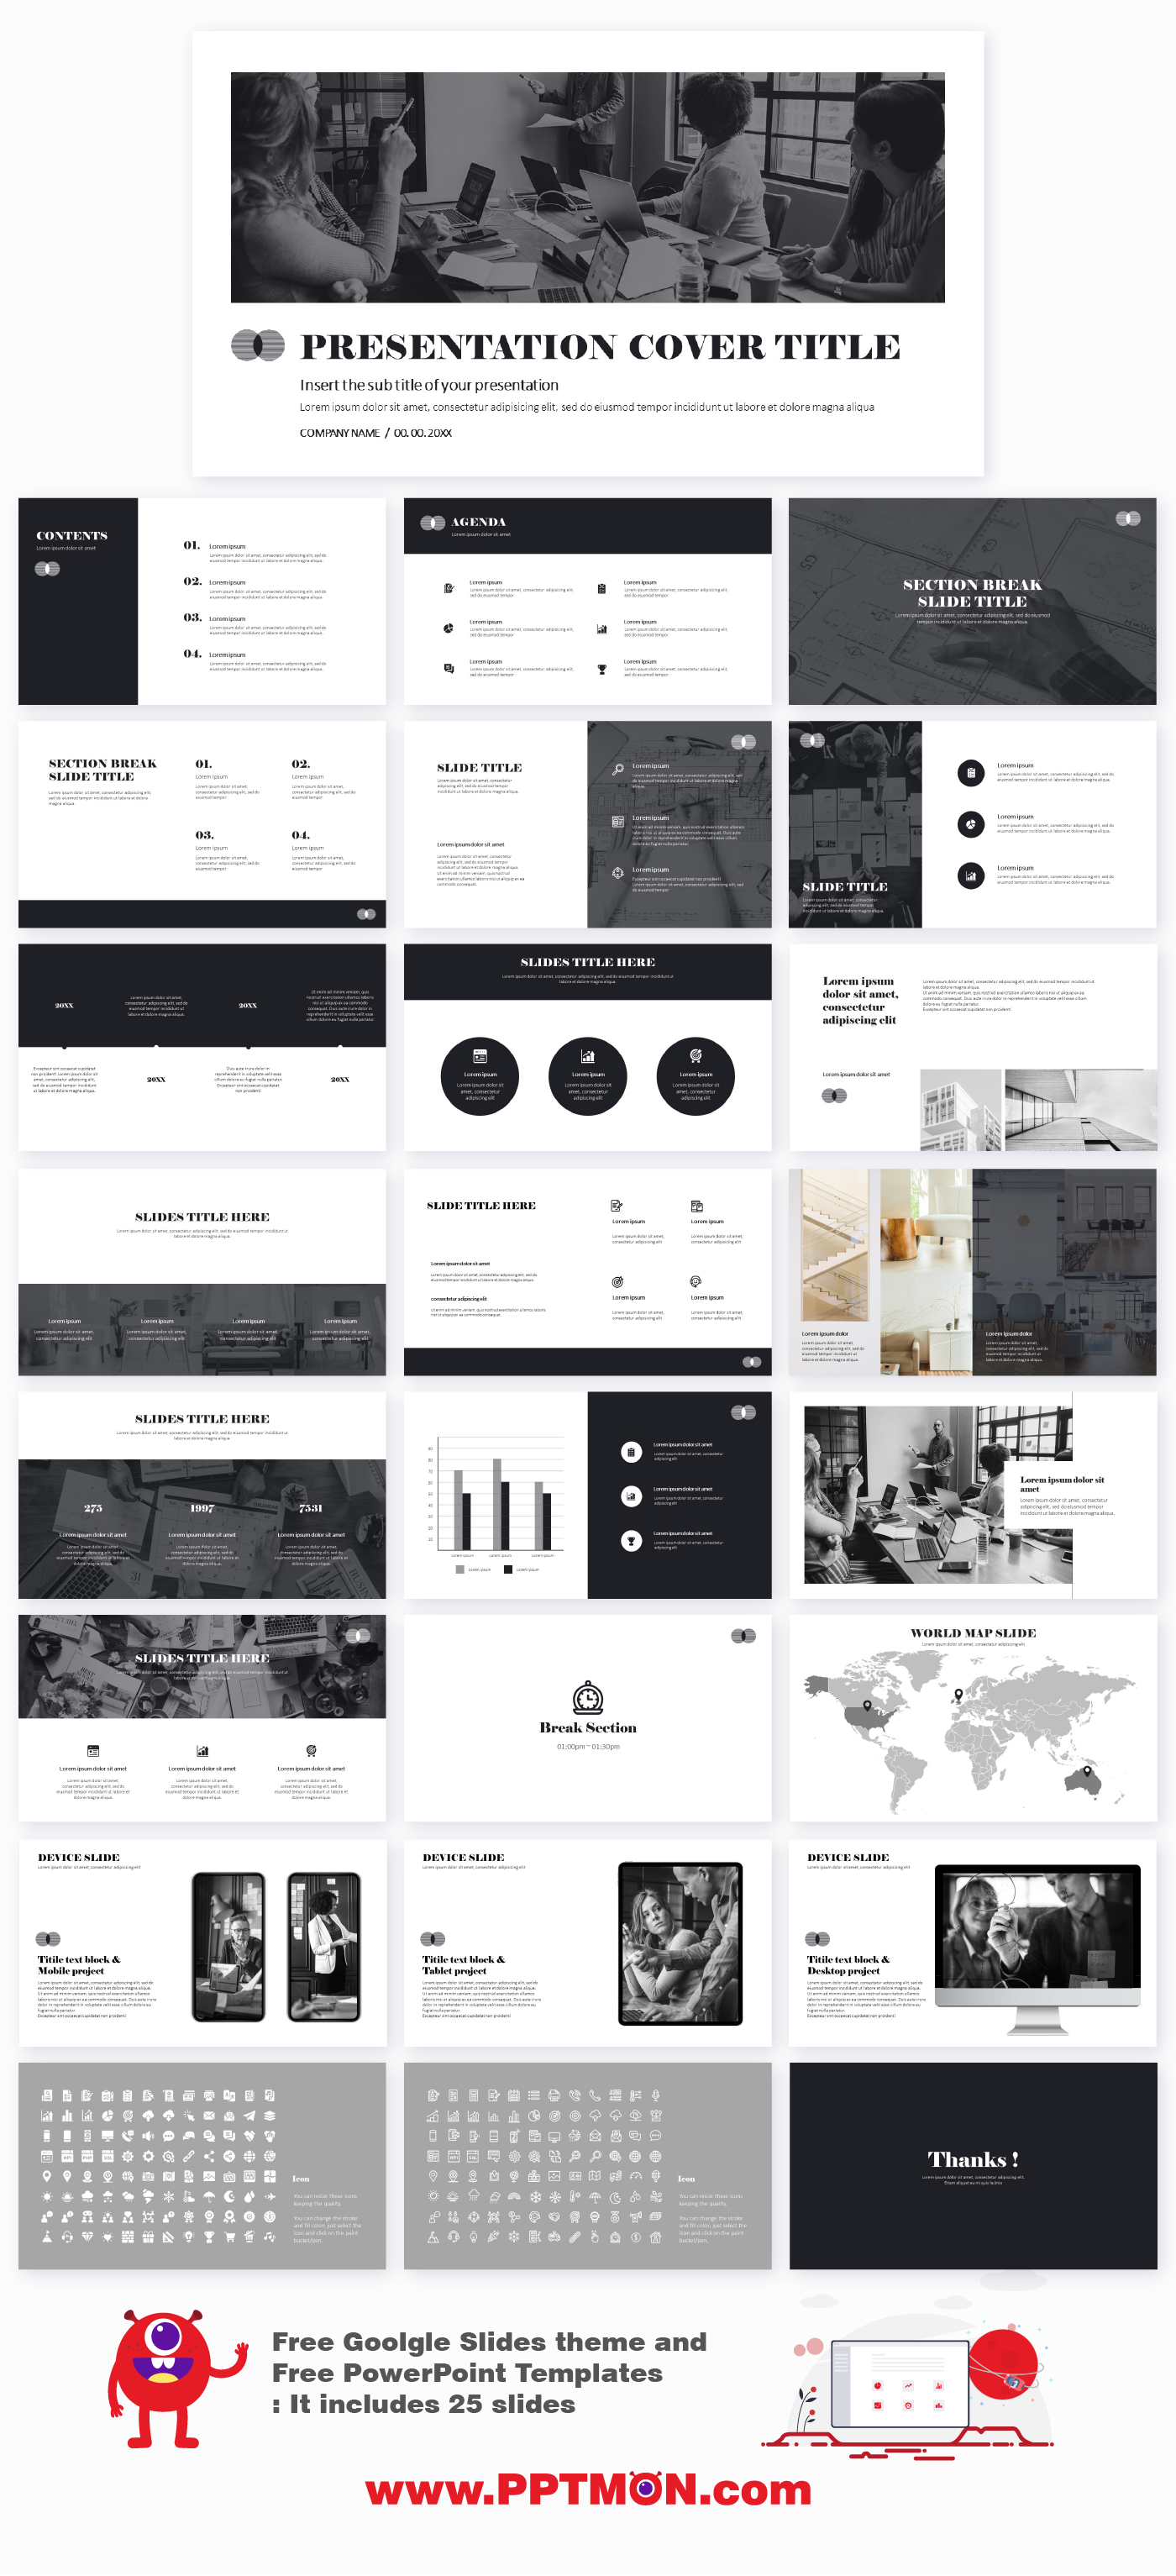 Architect Minimal Free Presentation Templates Free Google Slides Theme And Powerpoint In 2020 Presentation Template Free Google Slides Themes Presentation Templates